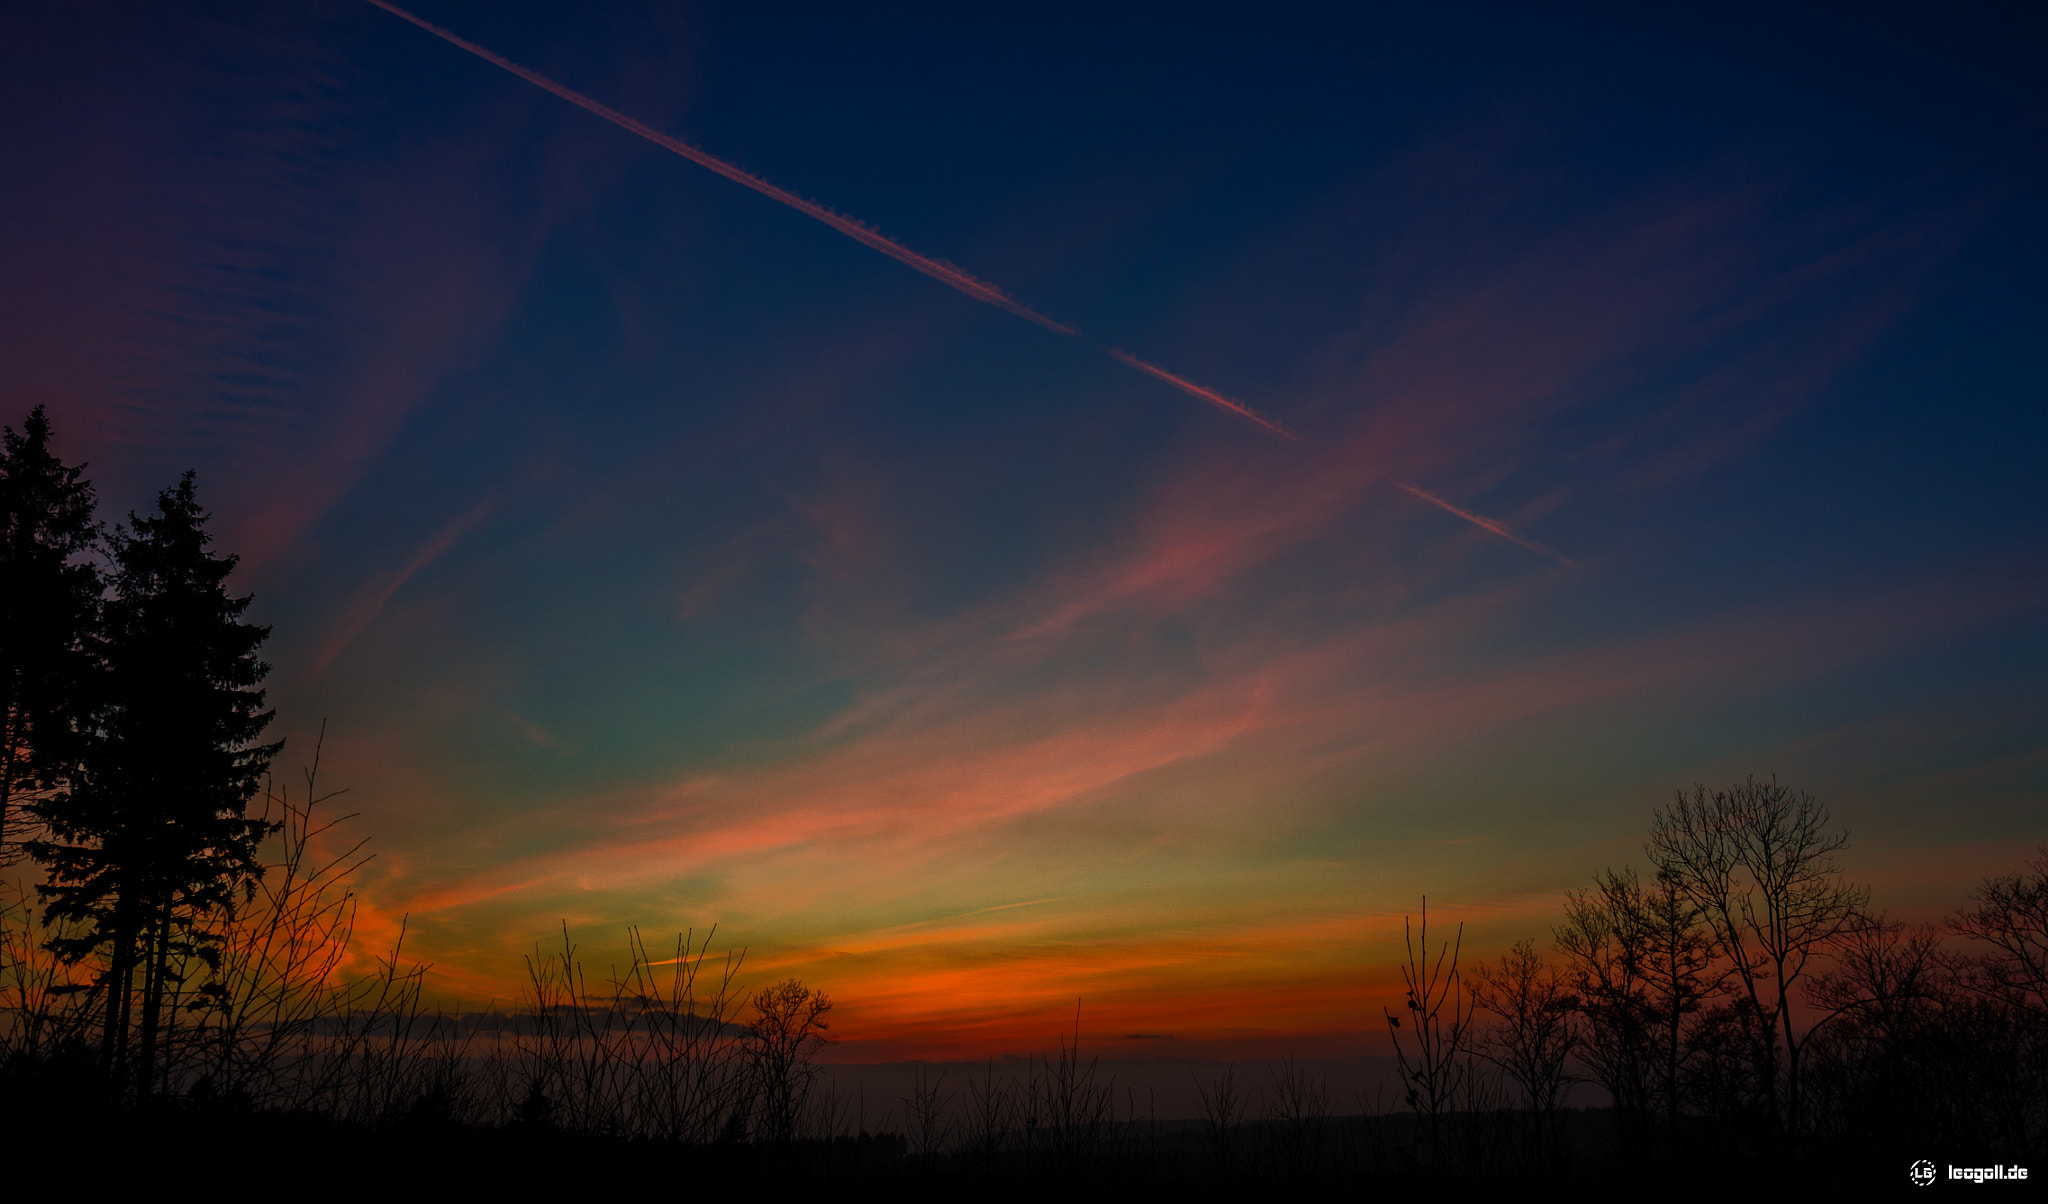 Photograph Sonnenuntergang in Ergste by Leo G on 500px